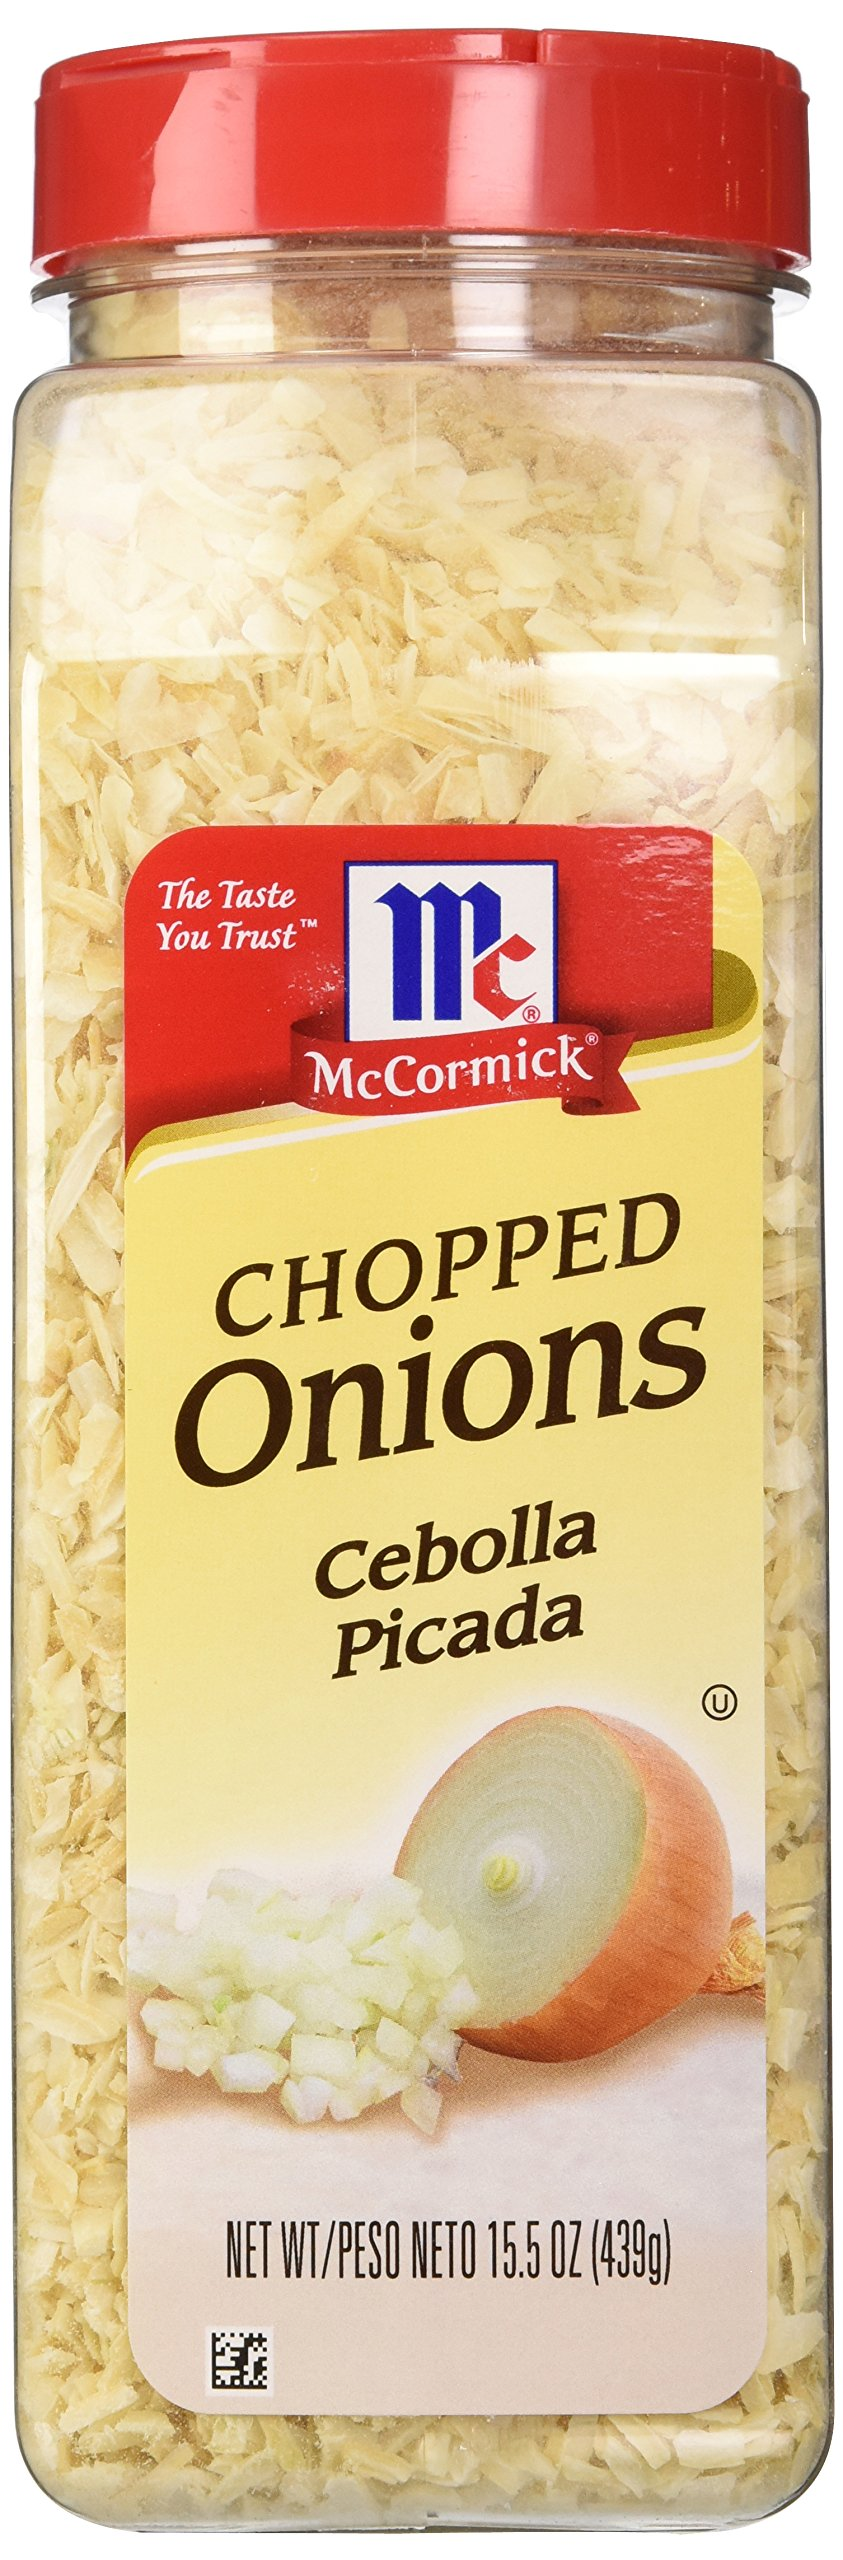 McCormick Chopped Onion, 15.5 oz (Case of 12) by McCormick